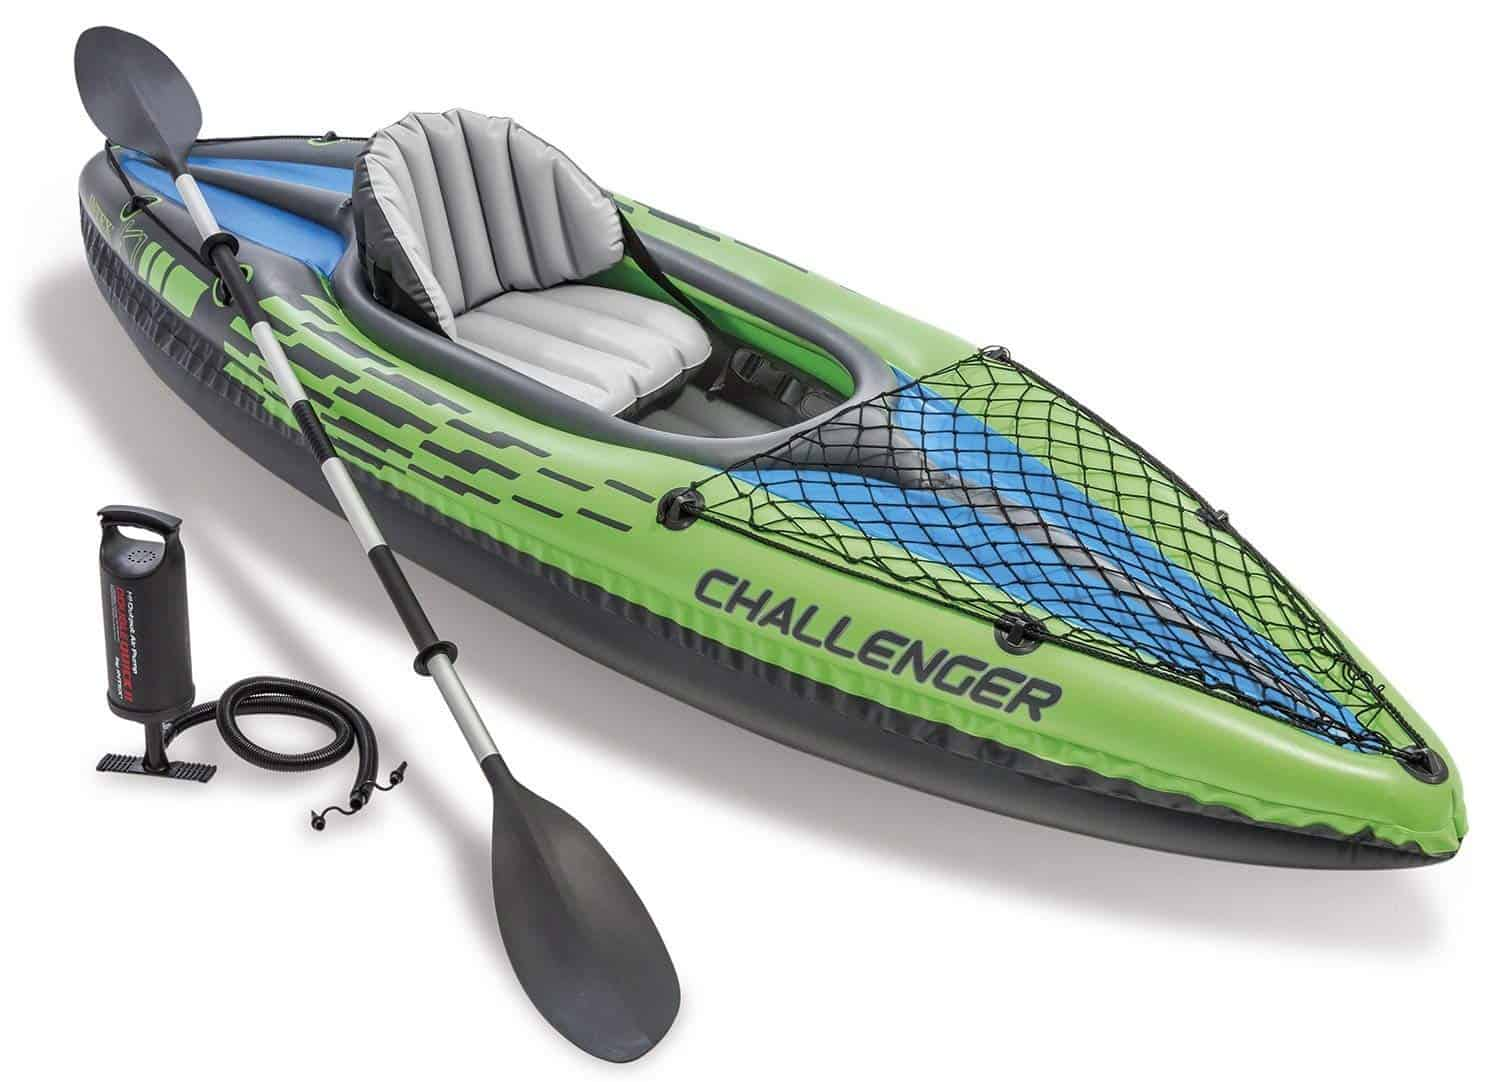 Intex Challenger K1 Kayak, 1-Person Inflatable Kayak Set Aluminum Oars High Output Air Pump